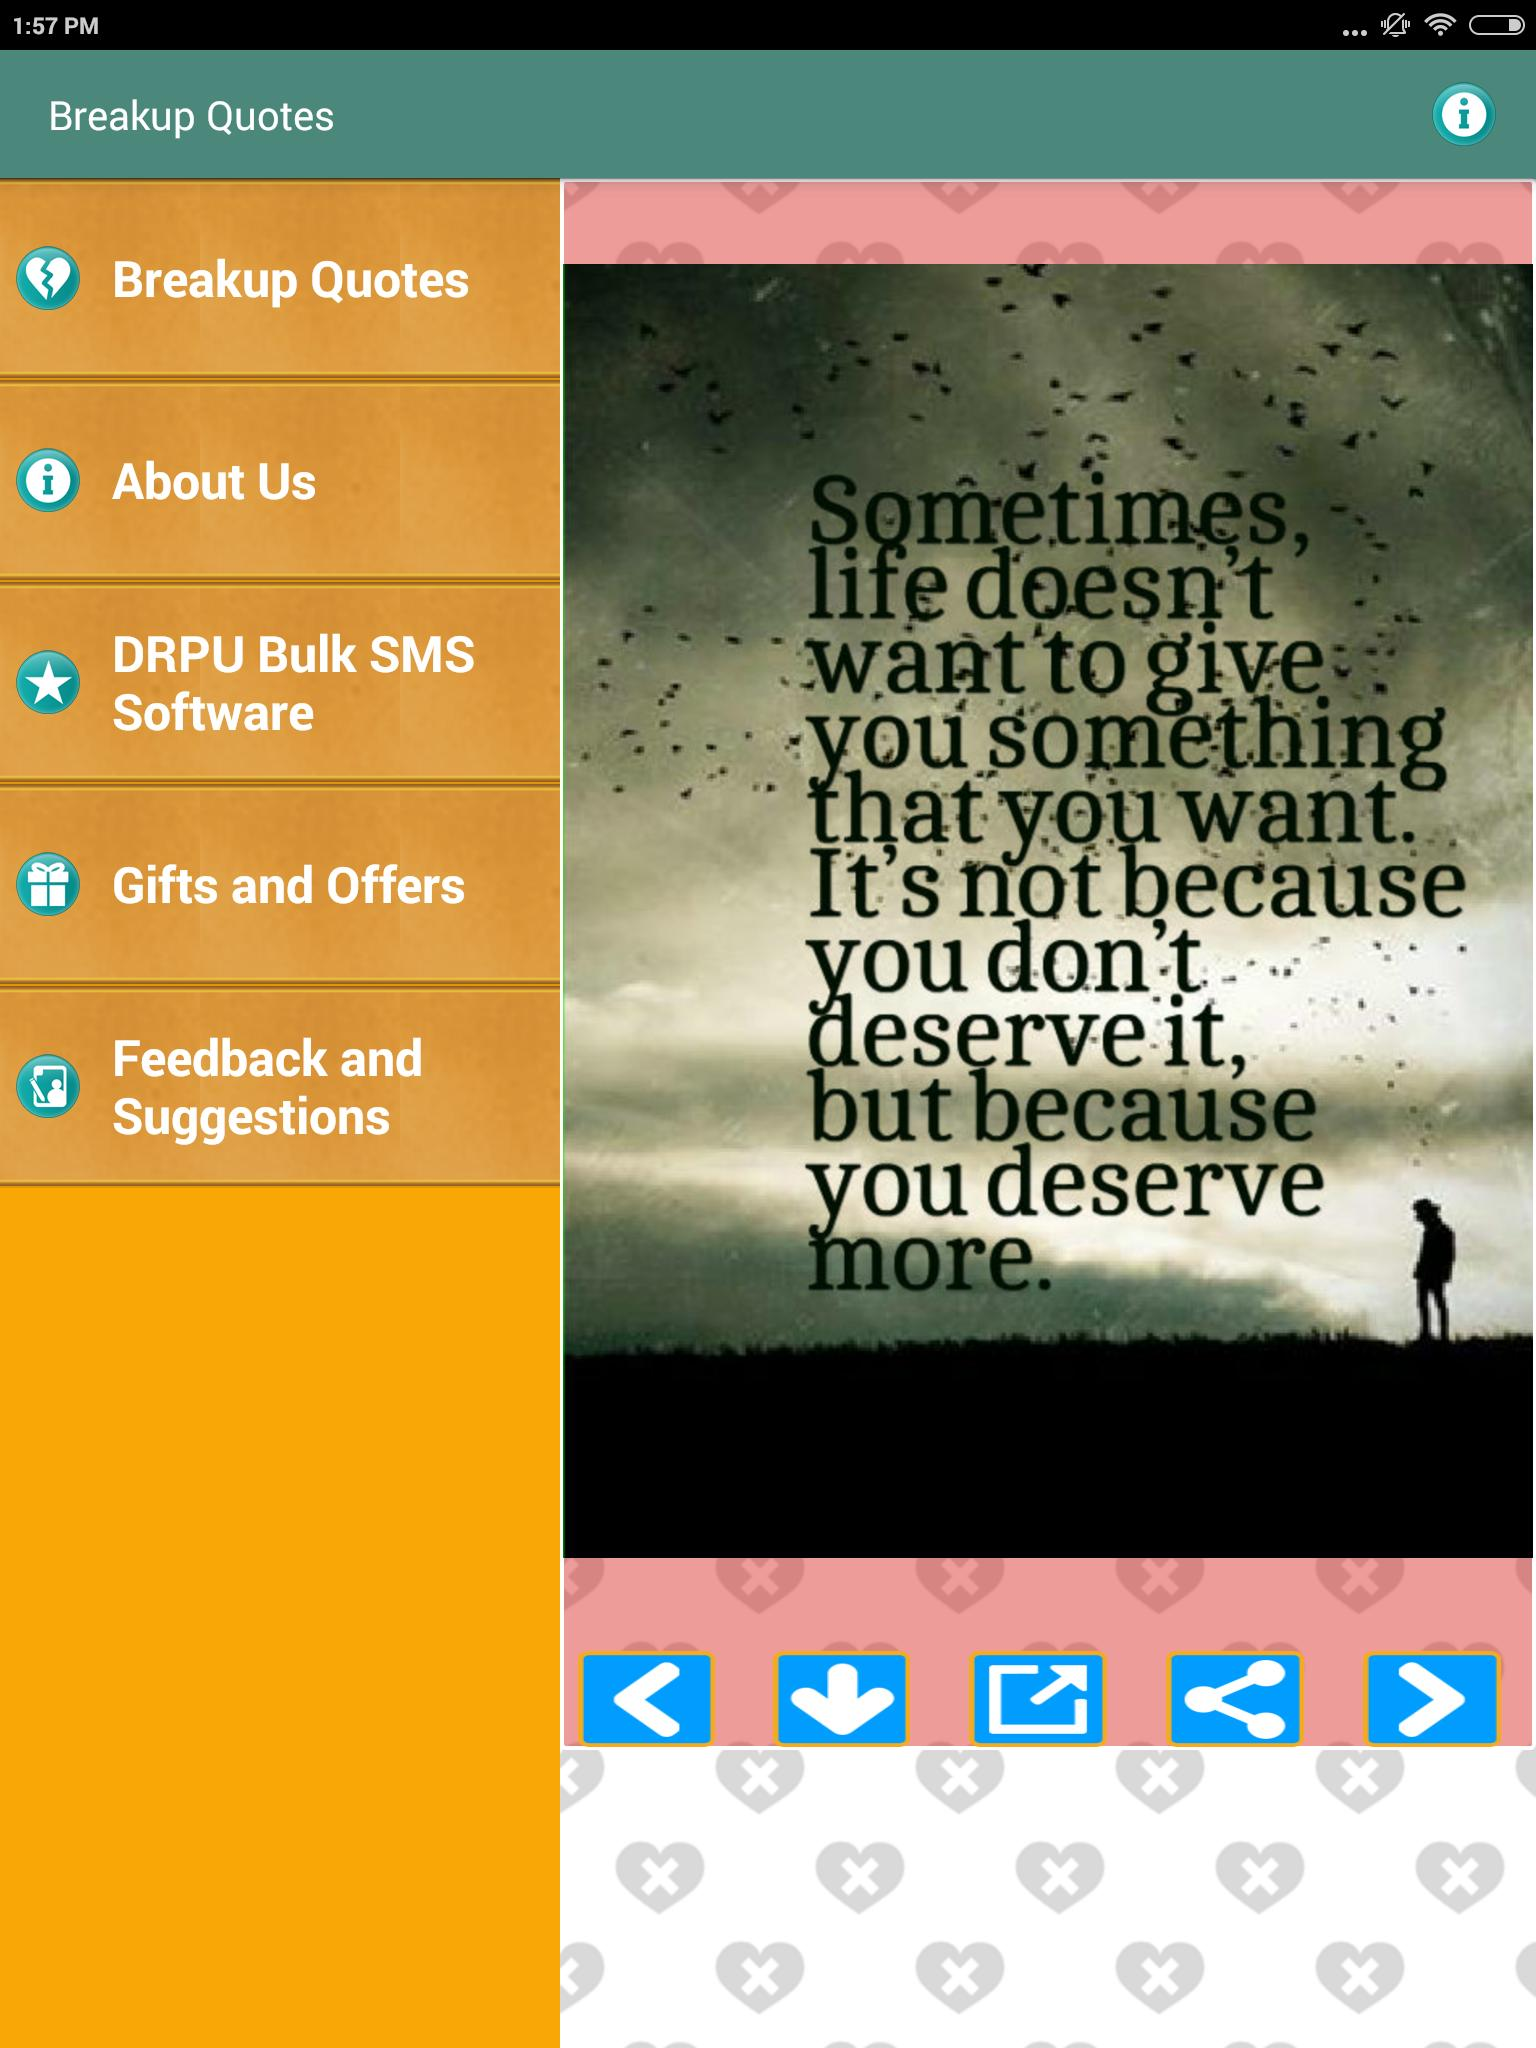 Break Up & Move on Images Full for Android - APK Download